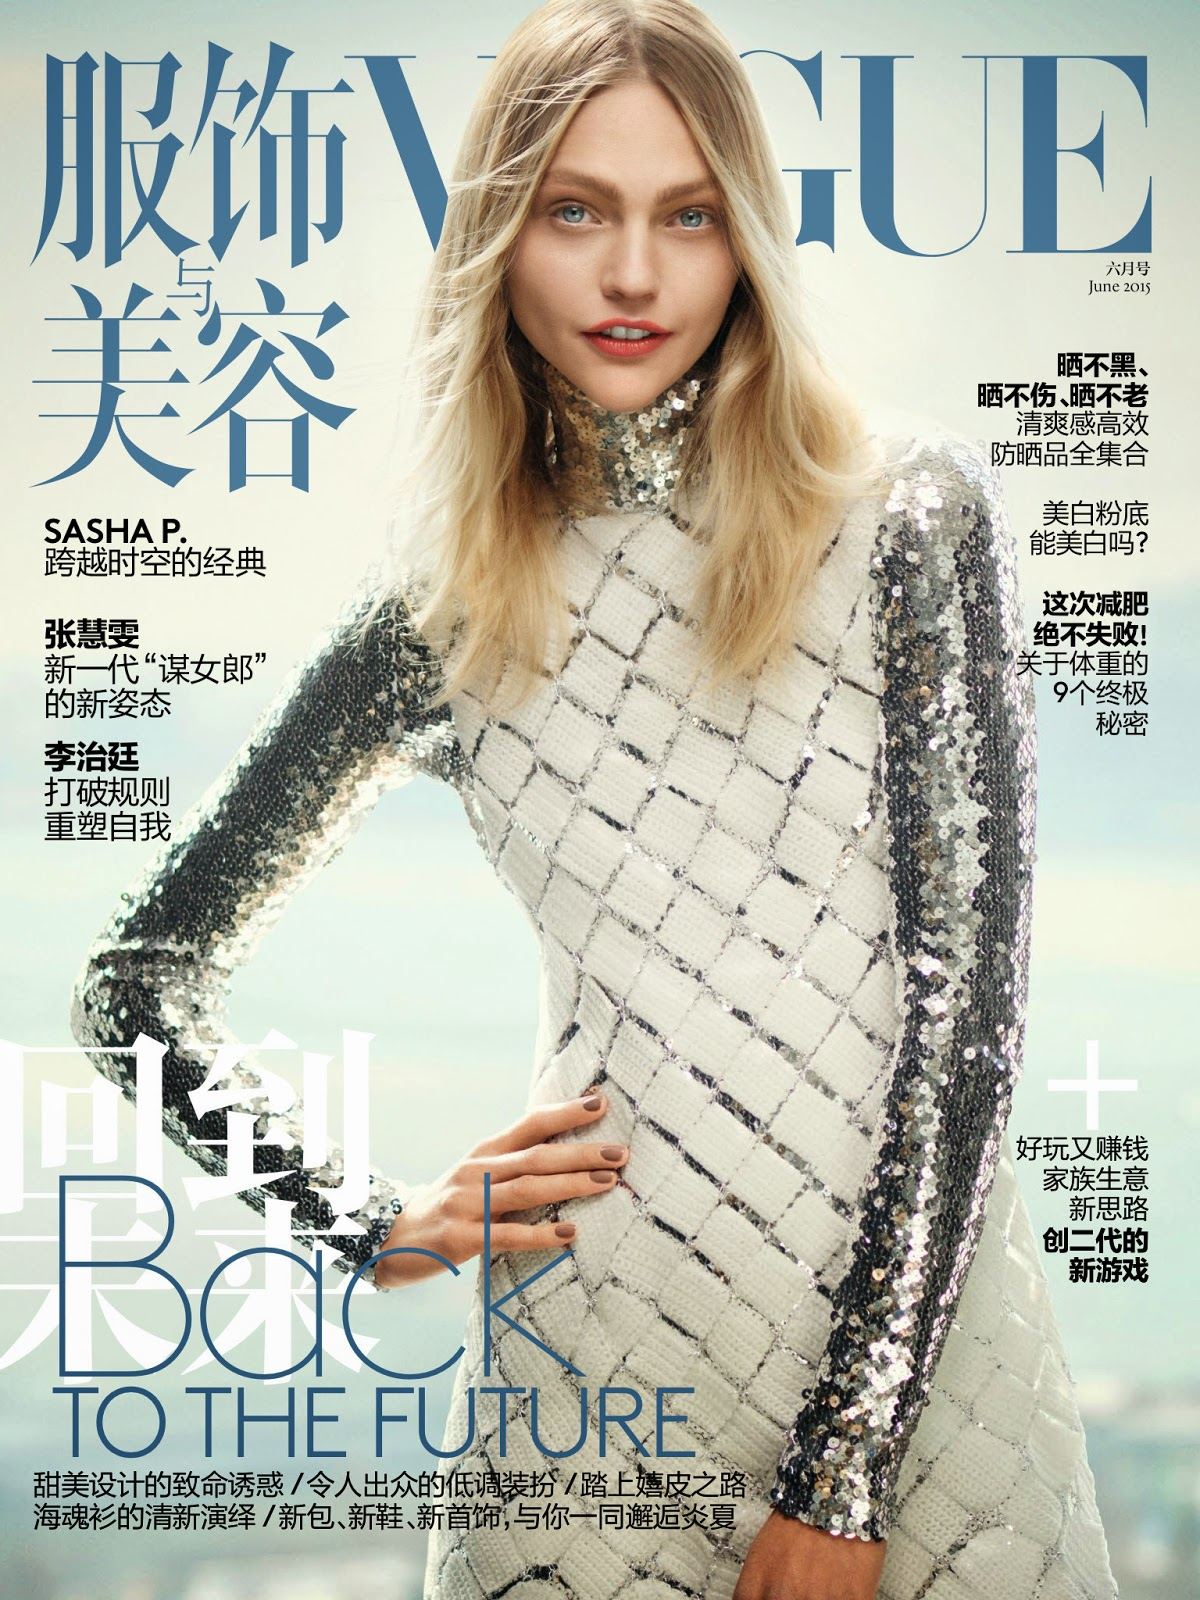 Model @ Sasha Pivovarova for Vogue China, June 2015